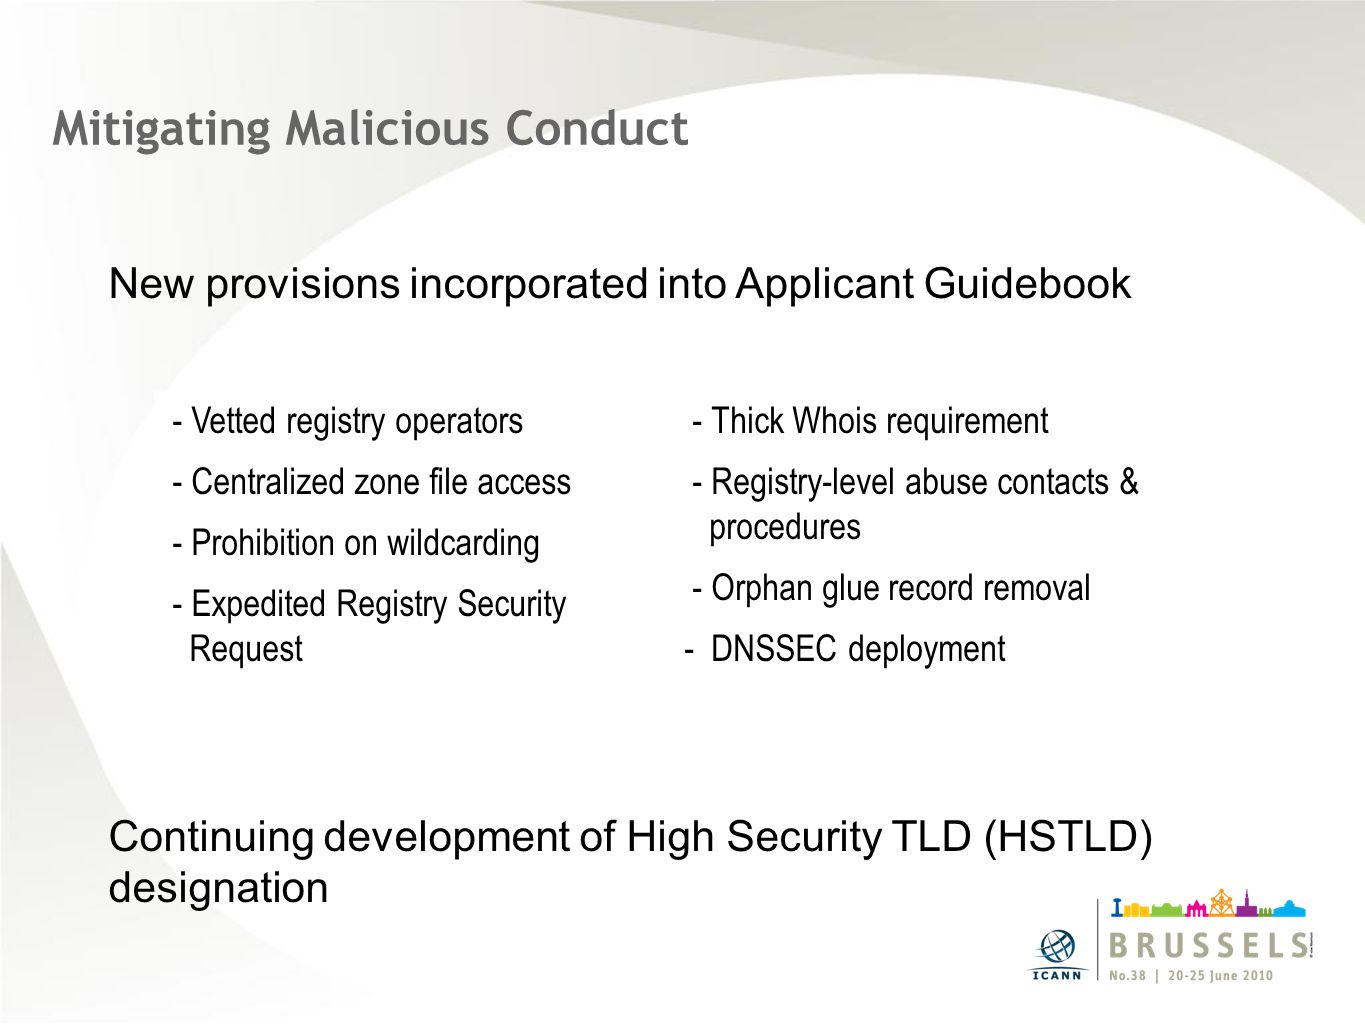 Mitigating Malicious Conduct New provisions incorporated into Applicant Guidebook Continuing development of High Security TLD (HSTLD) designation - Vetted registry operators - Centralized zone file access - Prohibition on wildcarding - Expedited Registry Security Request - Thick Whois requirement - Registry-level abuse contacts & procedures - Orphan glue record removal - DNSSEC deployment